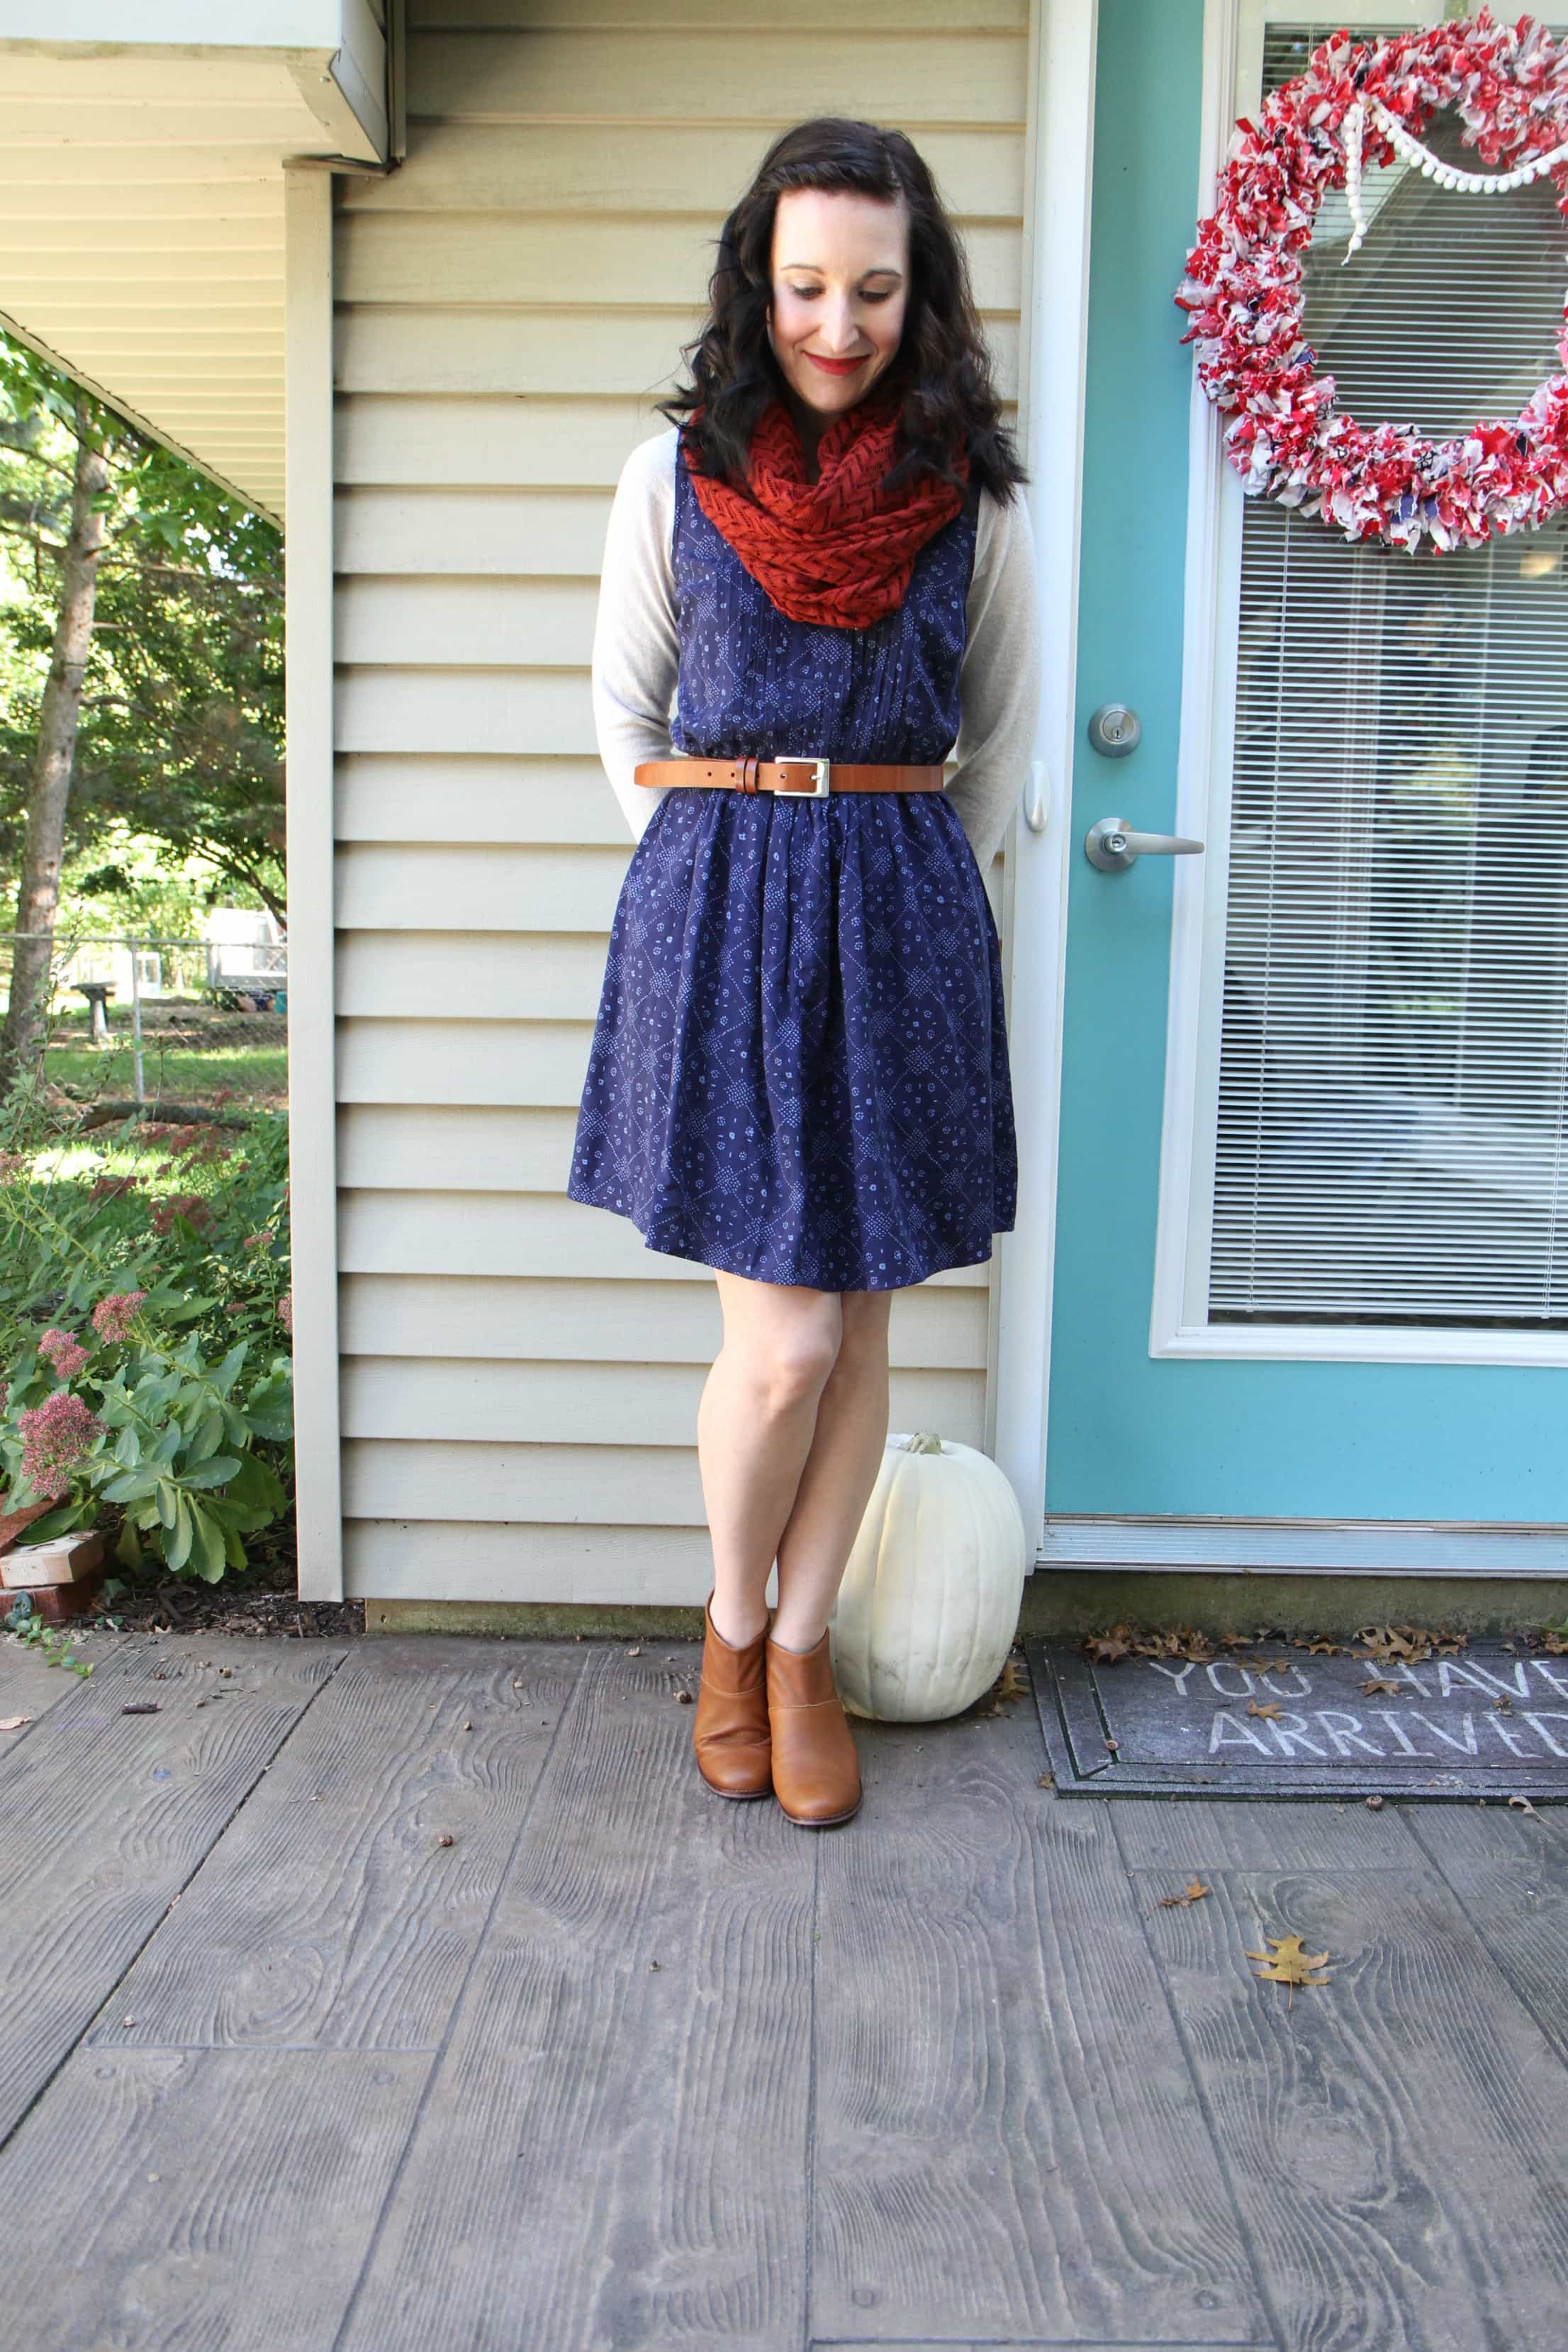 Pintuck dress + Fleece top + infinity scarf + belt + booties